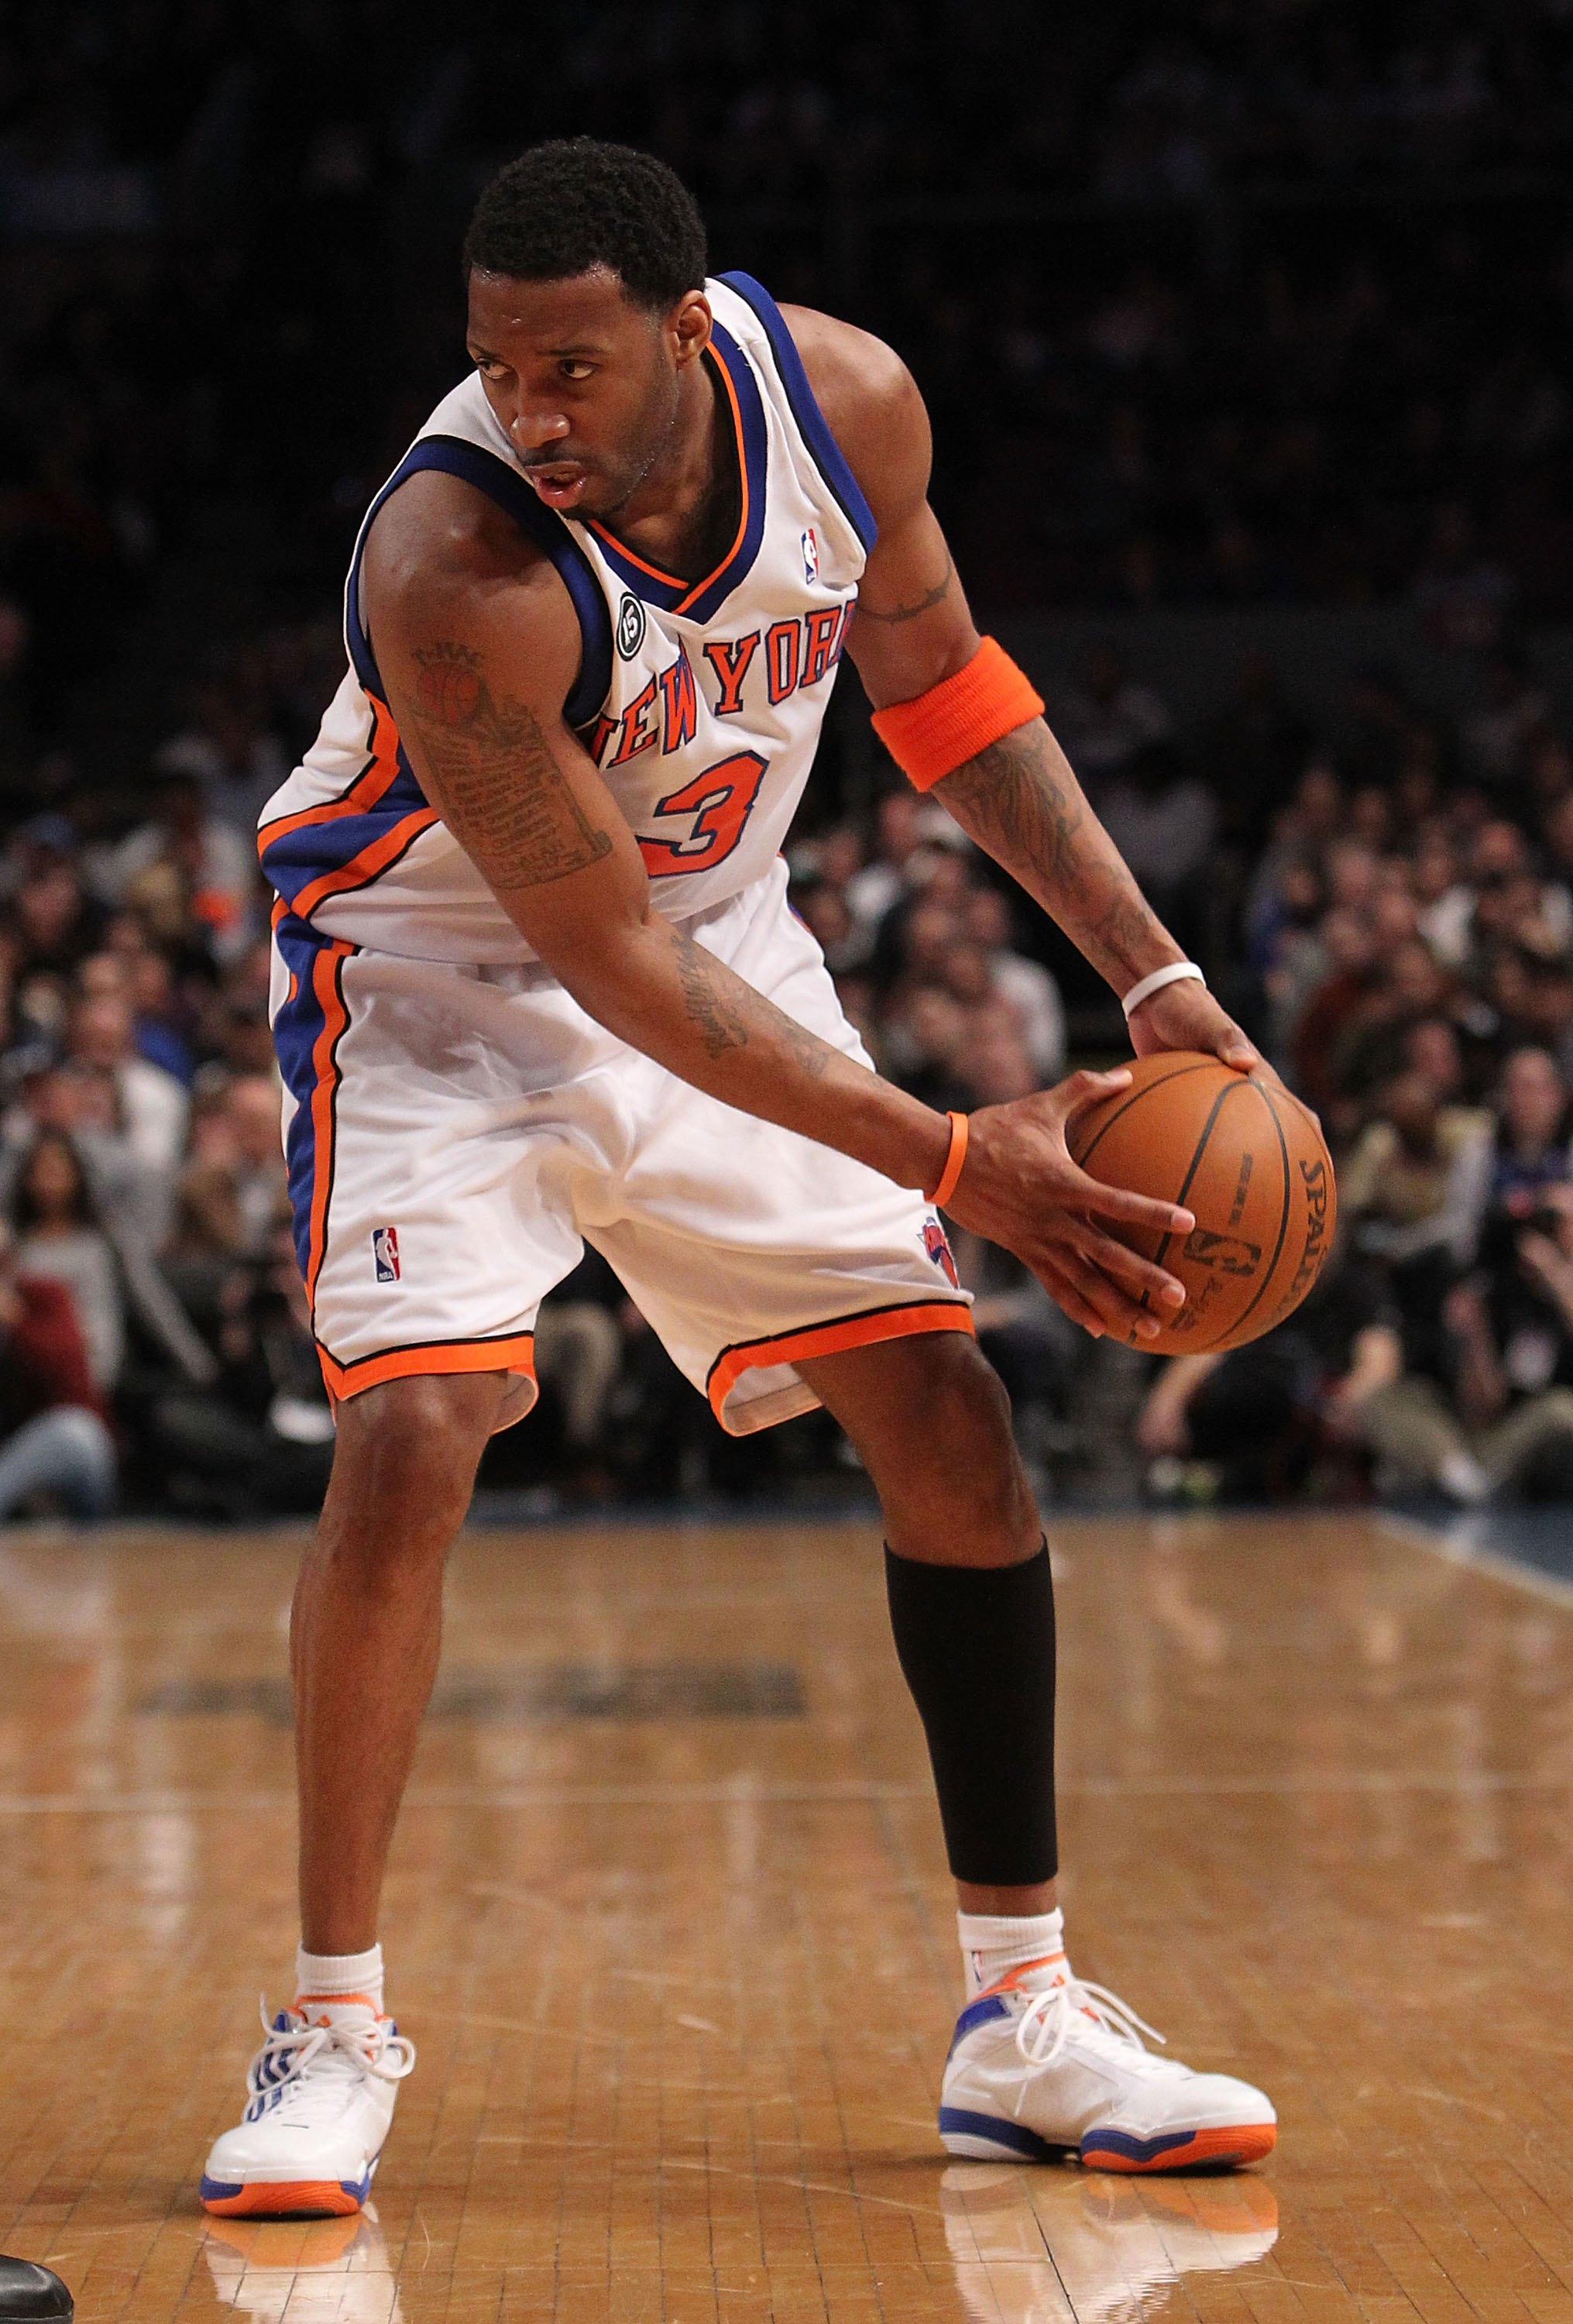 NEW YORK - FEBRUARY 20:  Tracy McGrady #3 of the New York Knicks with the ball against the Oklahoma City Thunder at Madison Square Garden on February 20, 2010 in New York, New York. NOTE TO USER: User expressly acknowledges and agrees that, by downloading